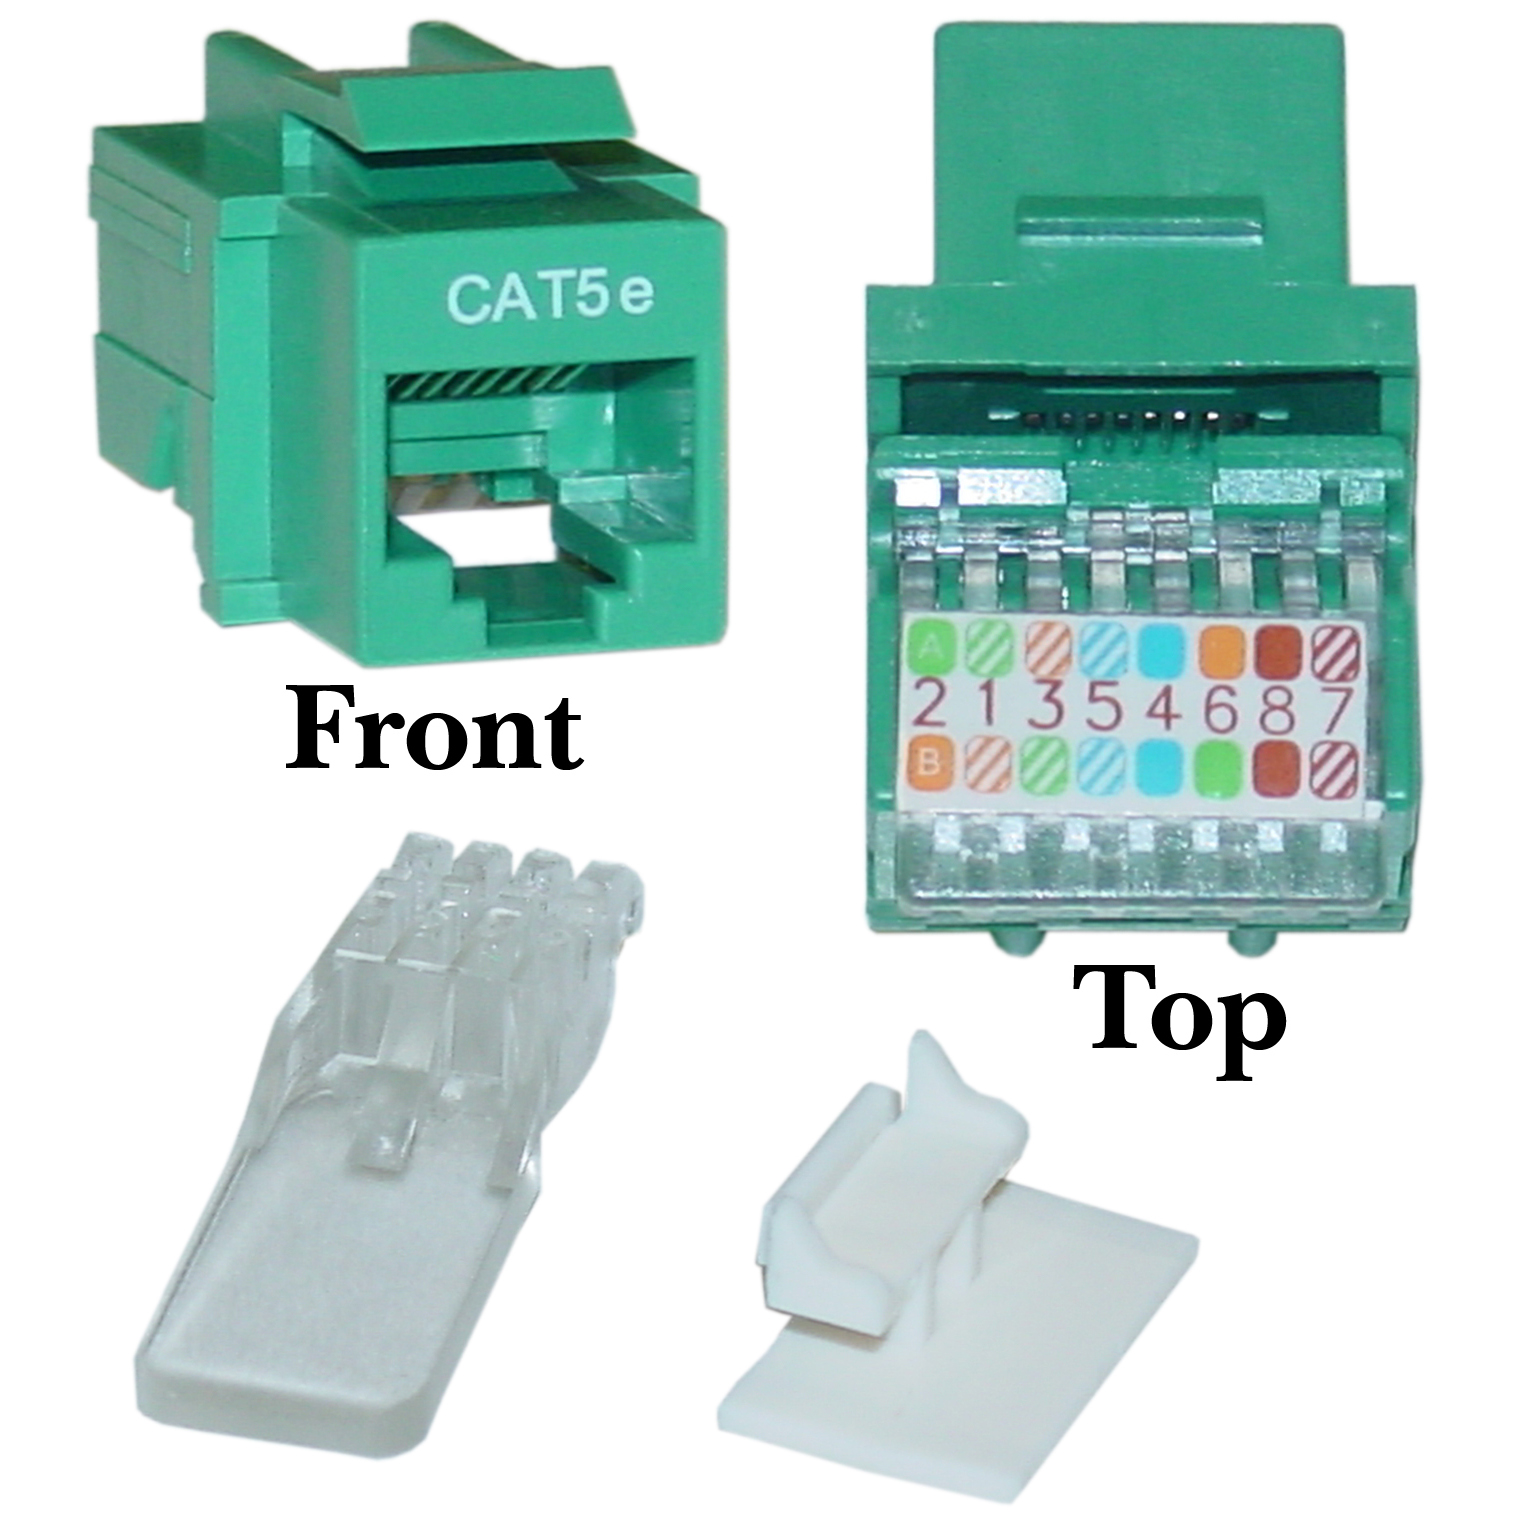 311 120gr green cat5e rj45 keystone jack toolless cablewholesale cat 5e jack diagram at gsmx.co